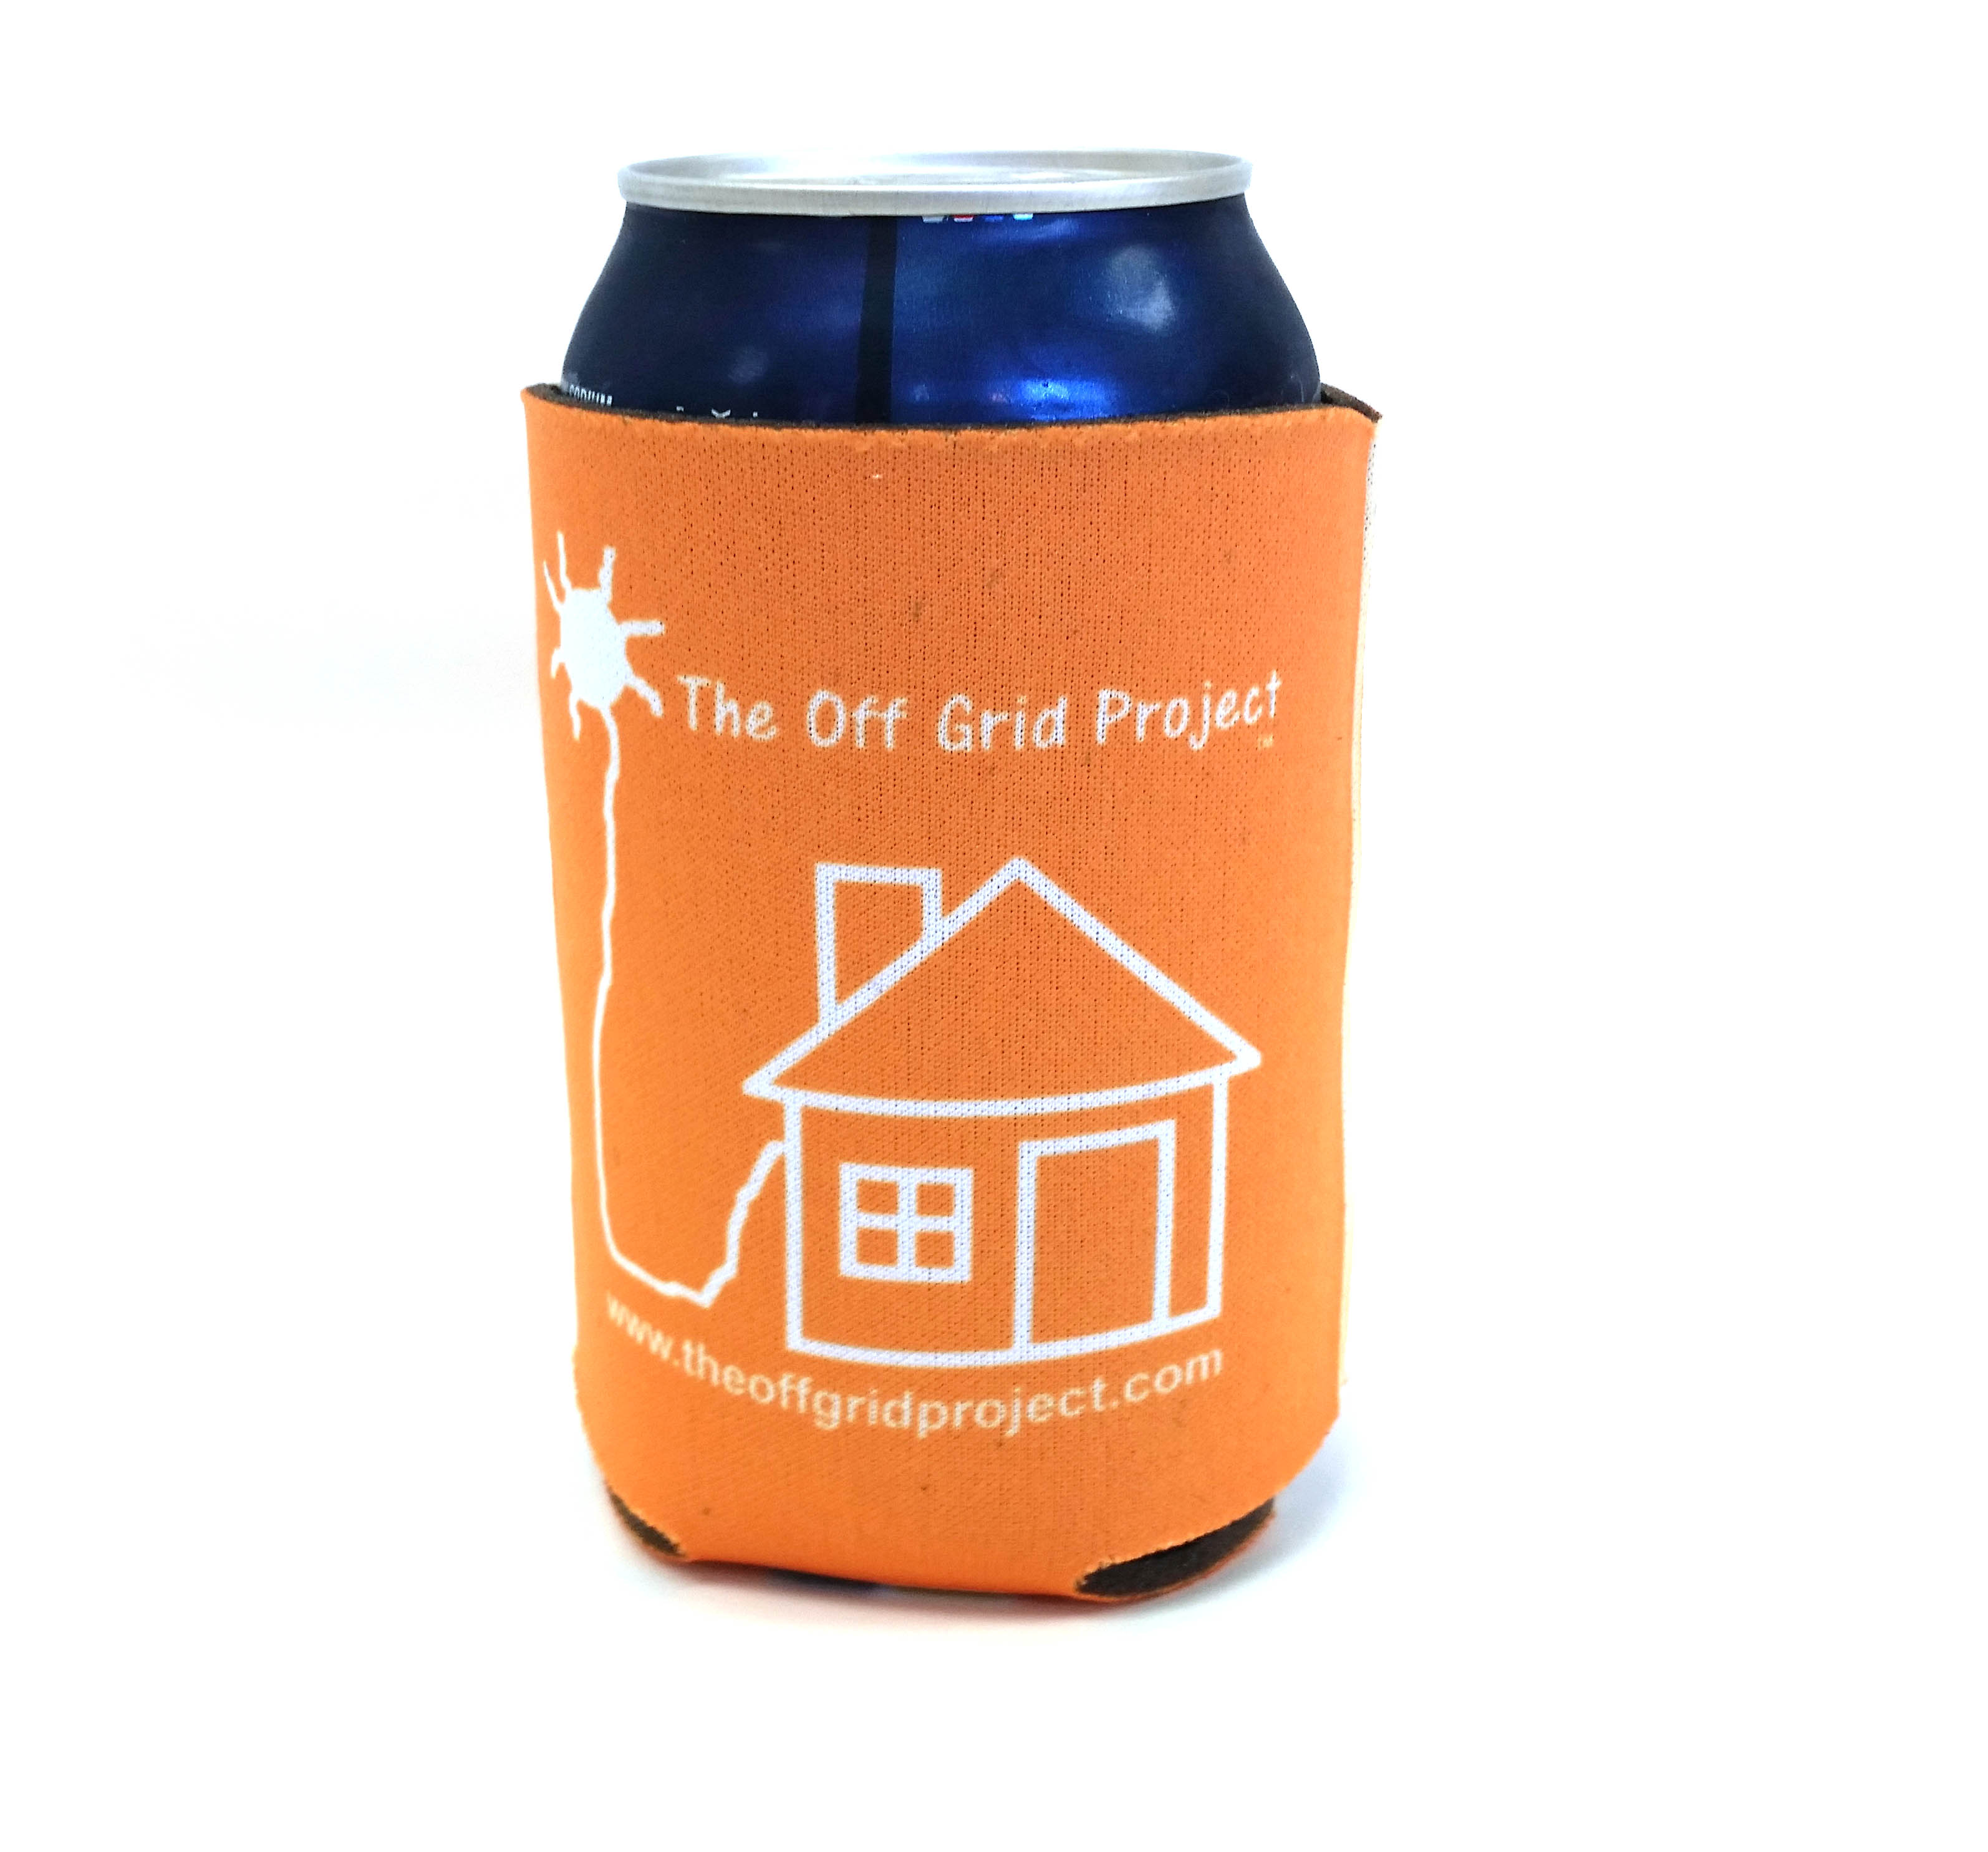 The do it yourself world merchandise off grid project cup cozy orange click for larger image solutioingenieria Image collections